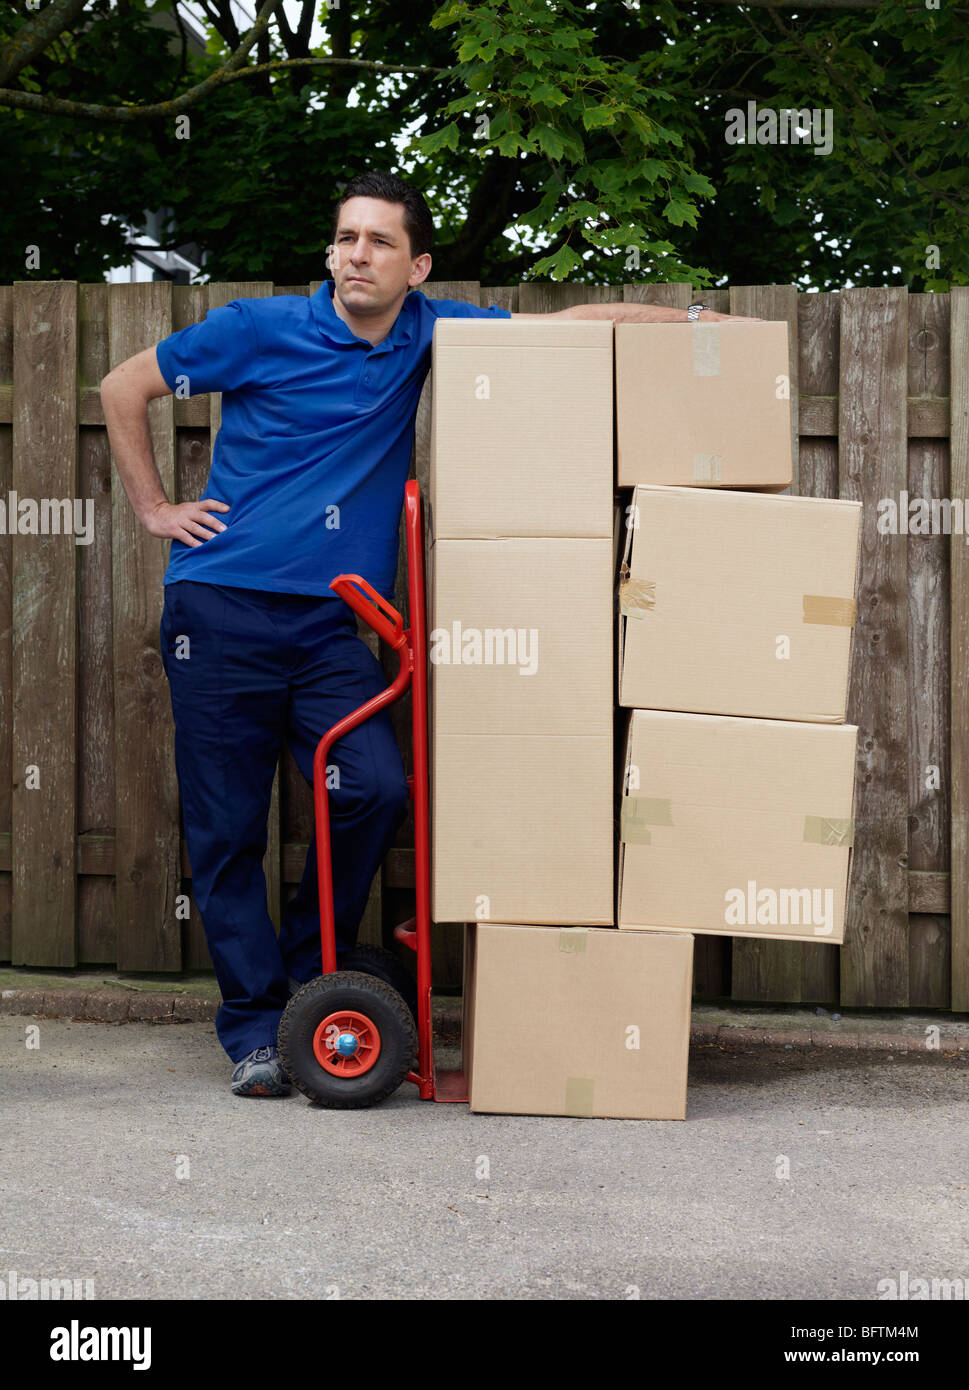 man delivering boxes on trolley - Stock Image